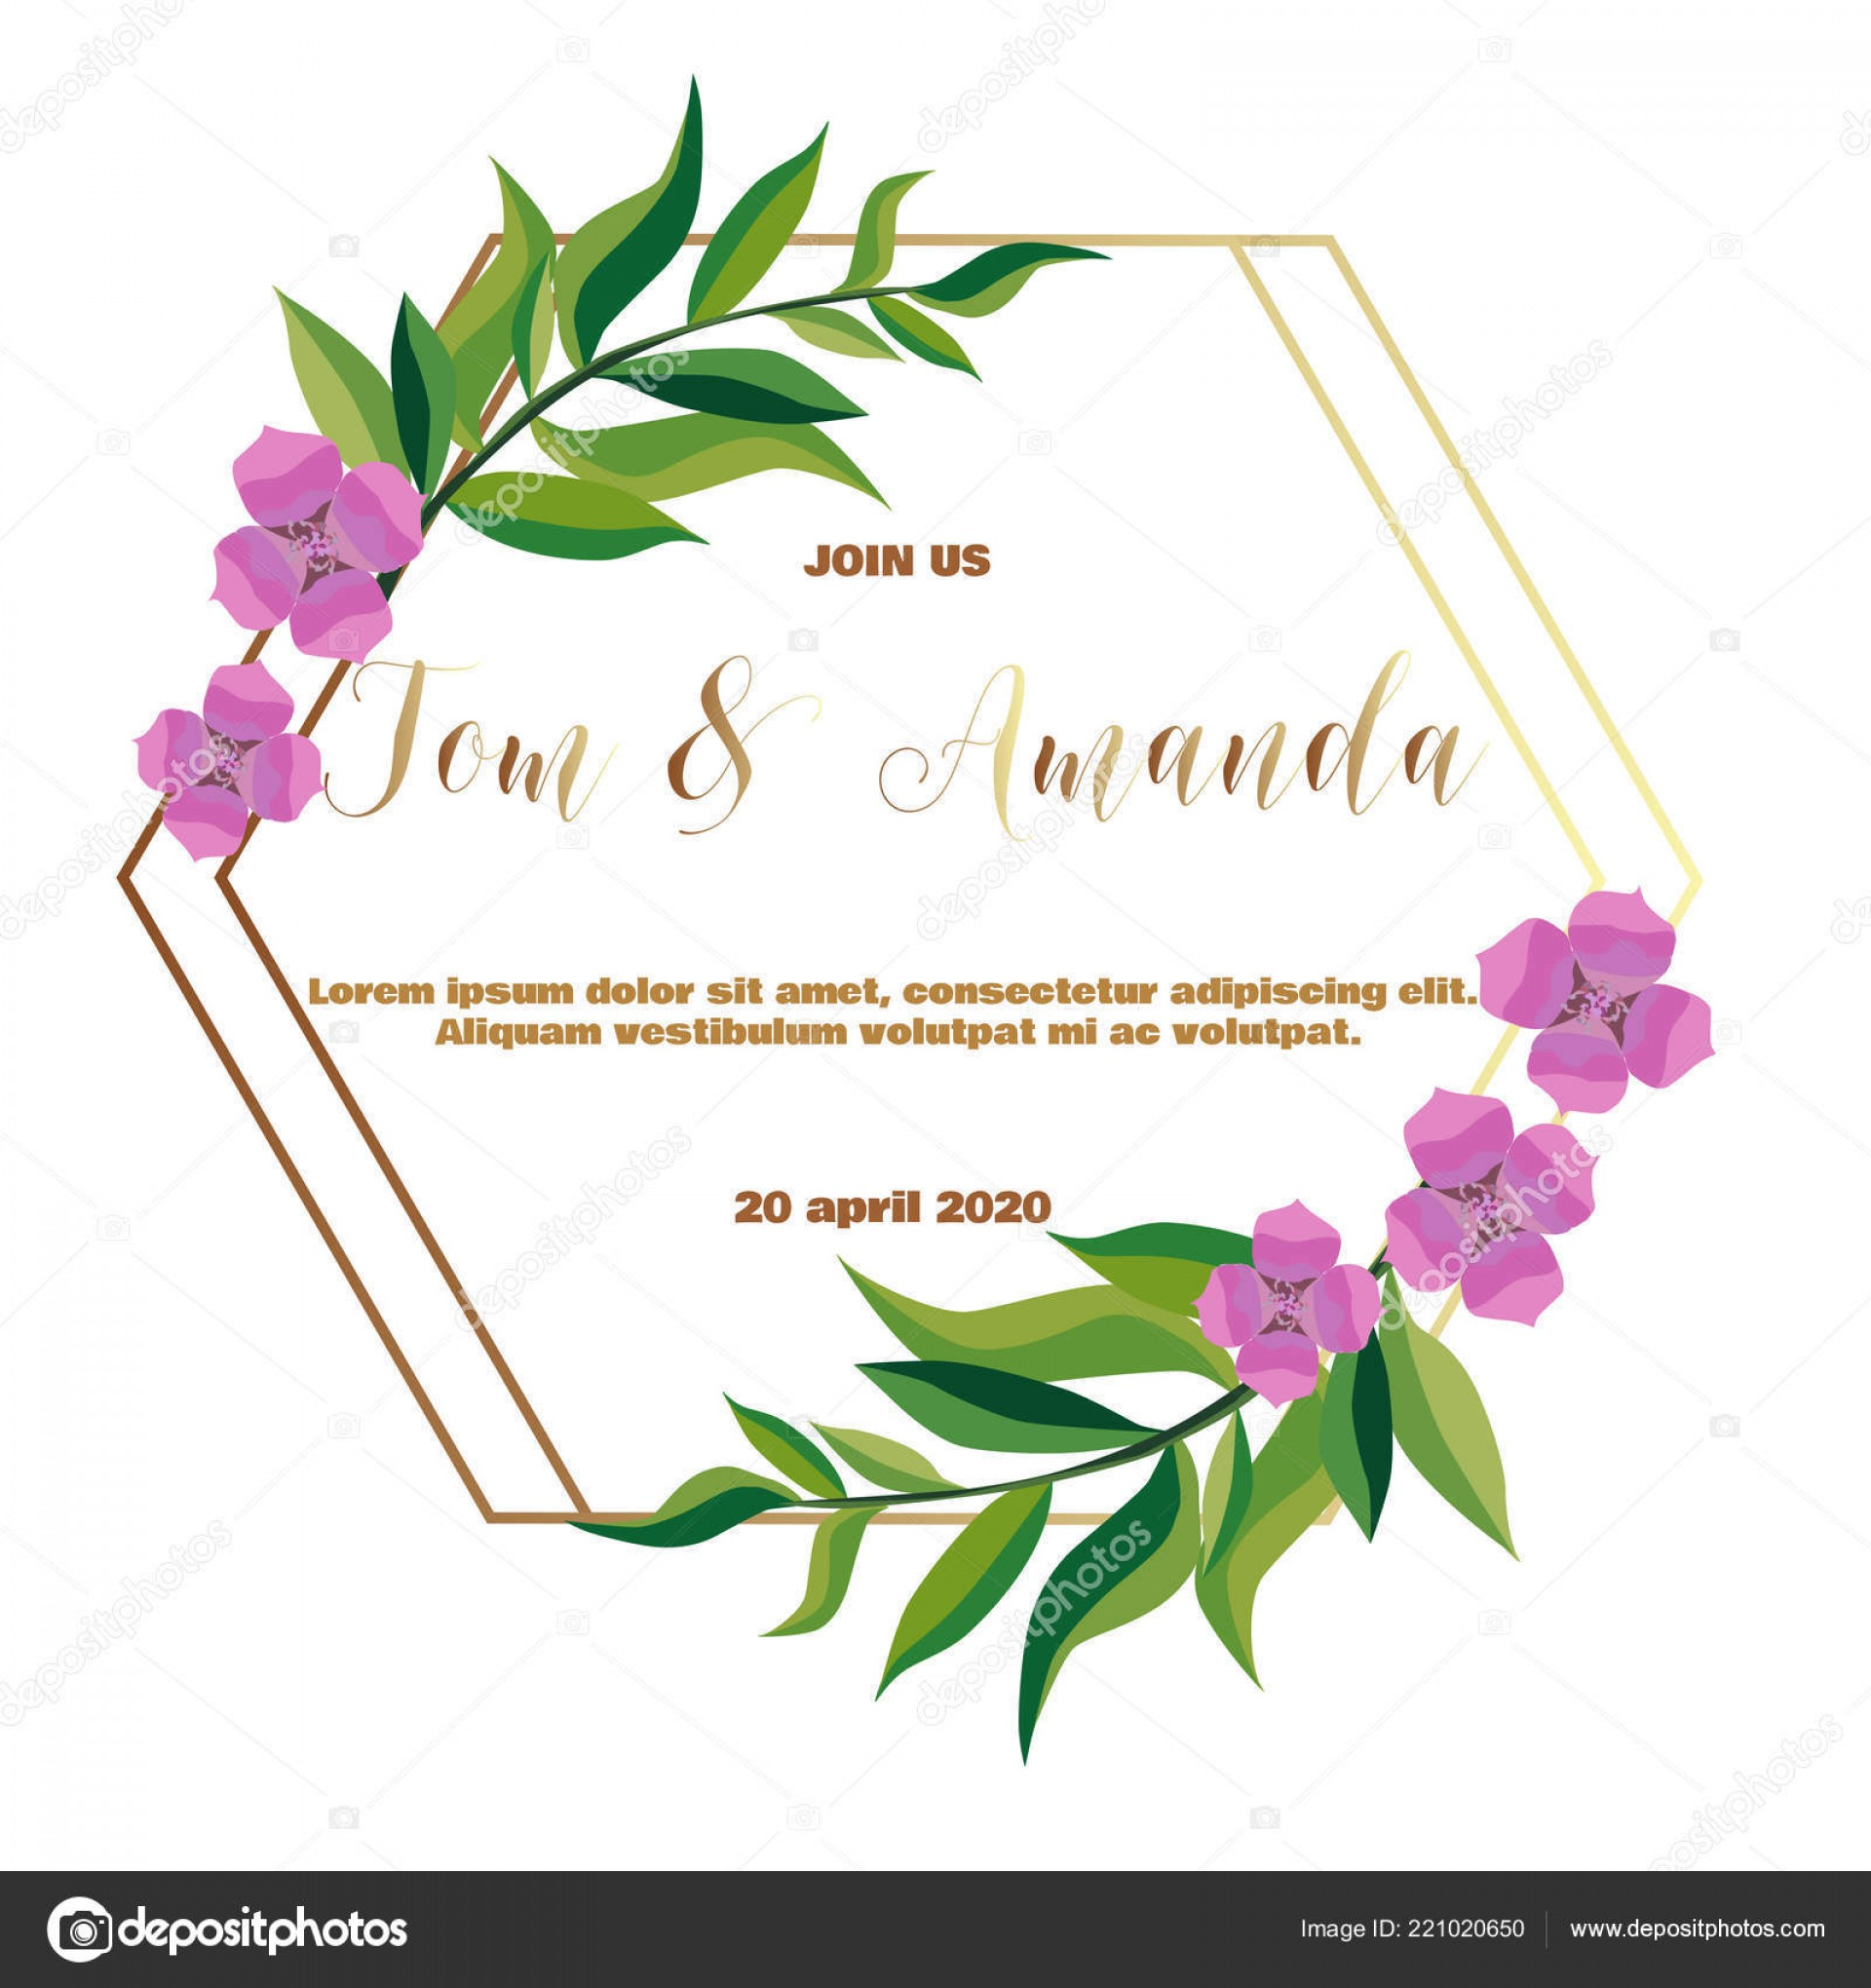 005 Fascinating Printable Wedding Invitation Template Concept  Free For Microsoft Word Vintage1920